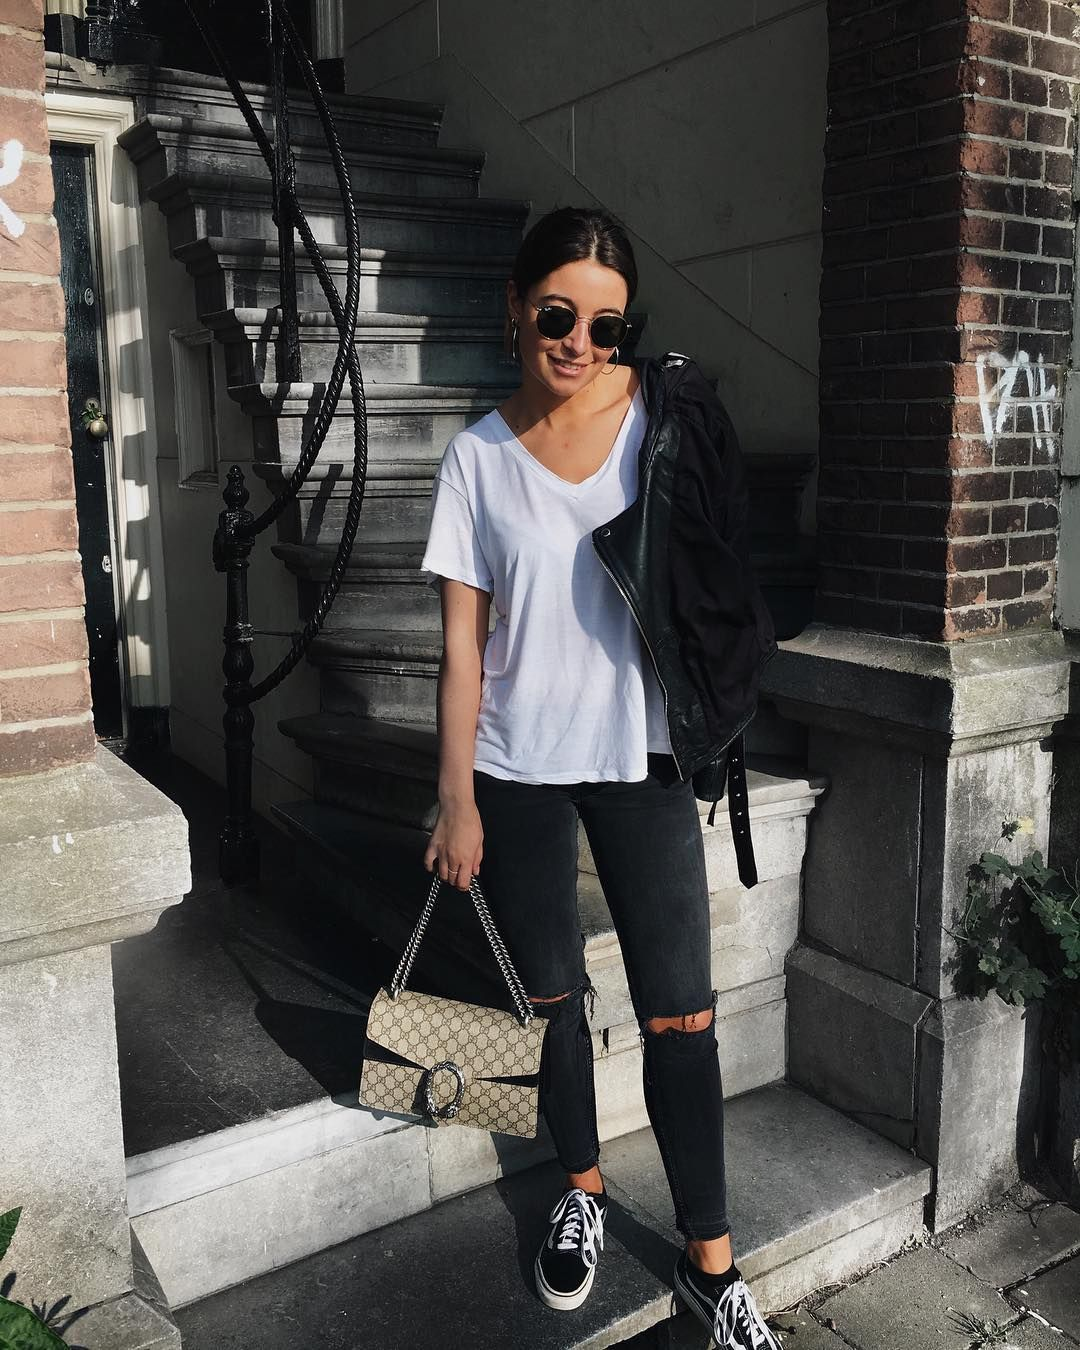 Casual Outfit Inspo With Thia Loose White Tee And Ripped Black Distressed Jeans And Black Vans Casual Outfits Fashion Outfits [ 1350 x 1080 Pixel ]